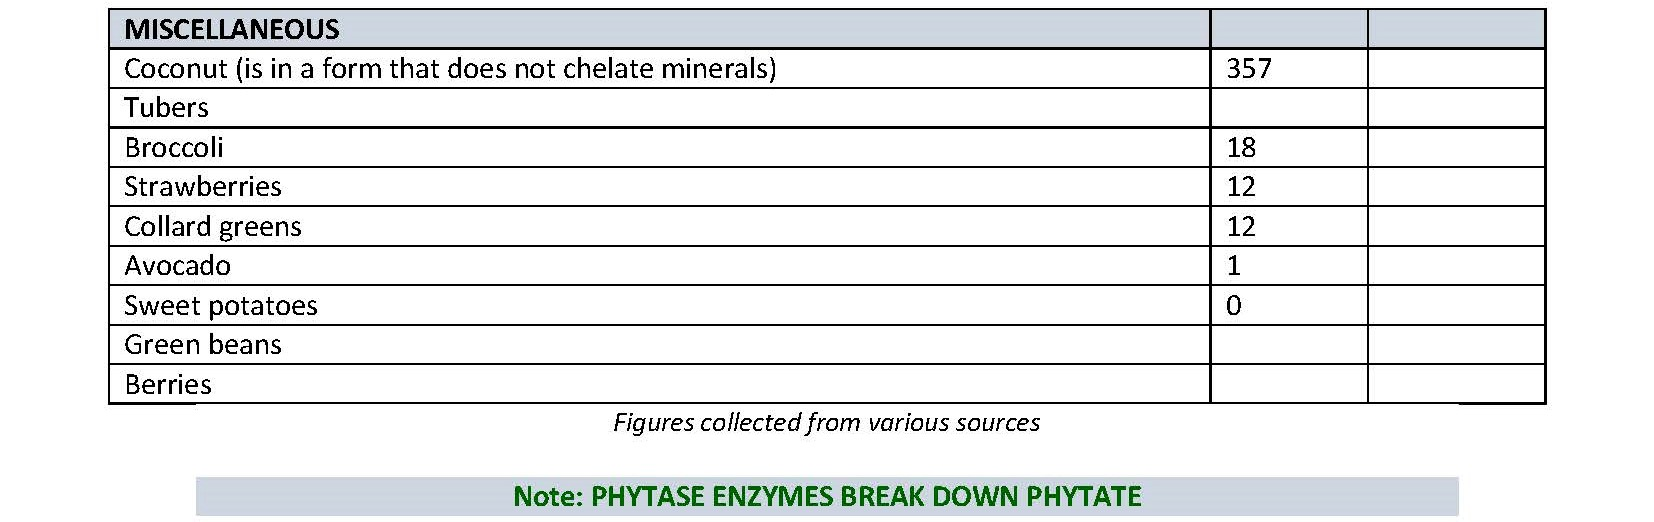 Phytate Content of Certain Foods - page 2